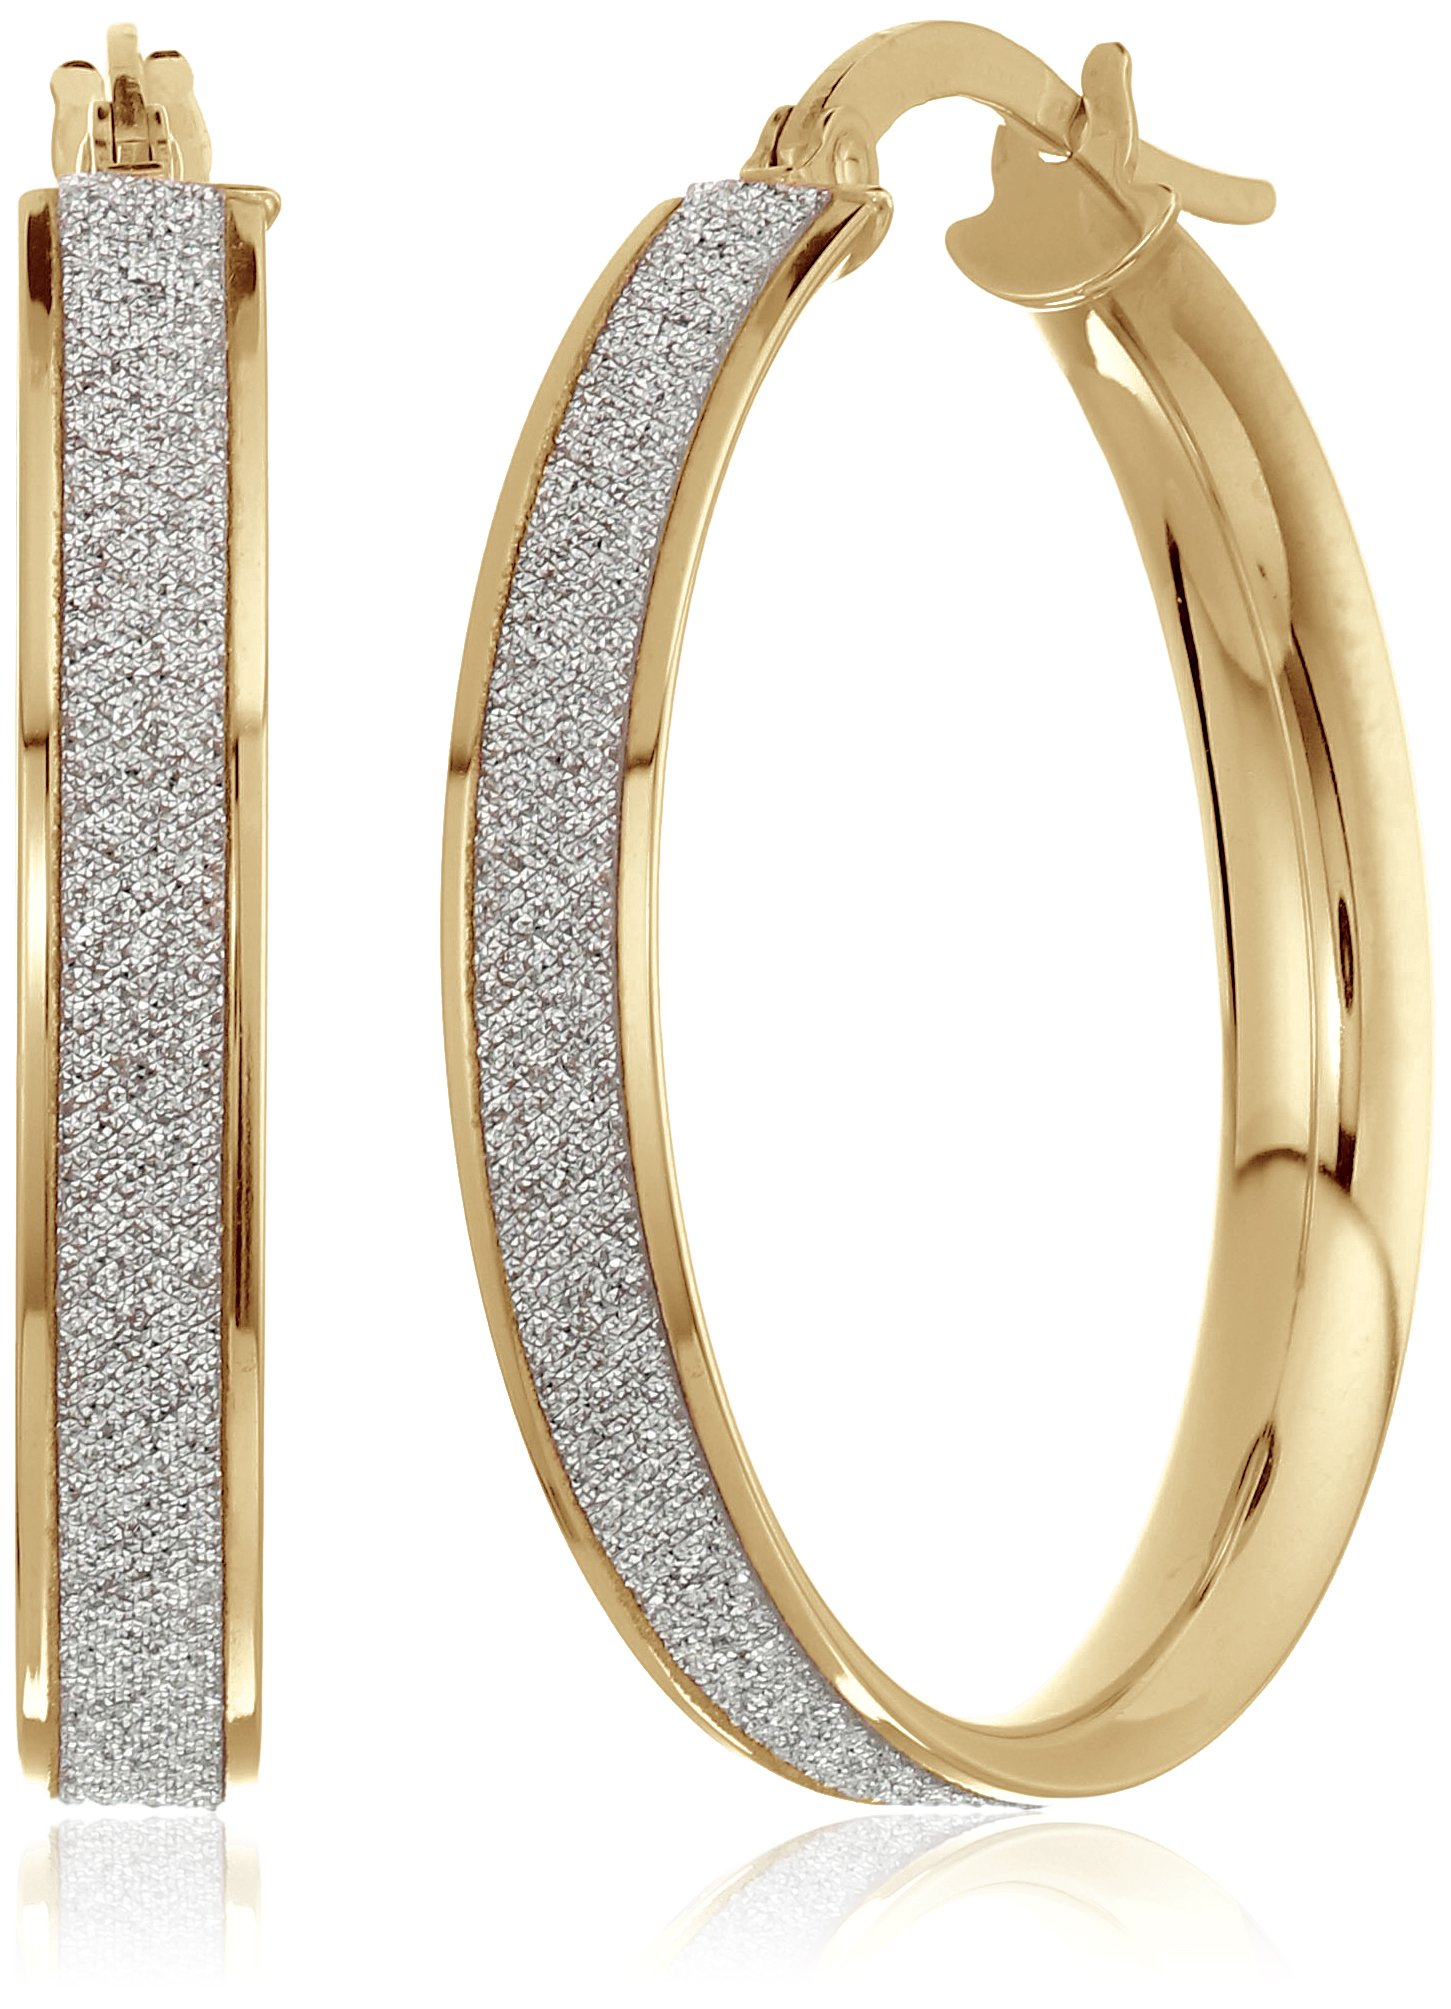 14k Yellow Gold Italian 20 mm Hoop Earrings with Pave Style Glitter Hoop Earrings by Amazon Collection